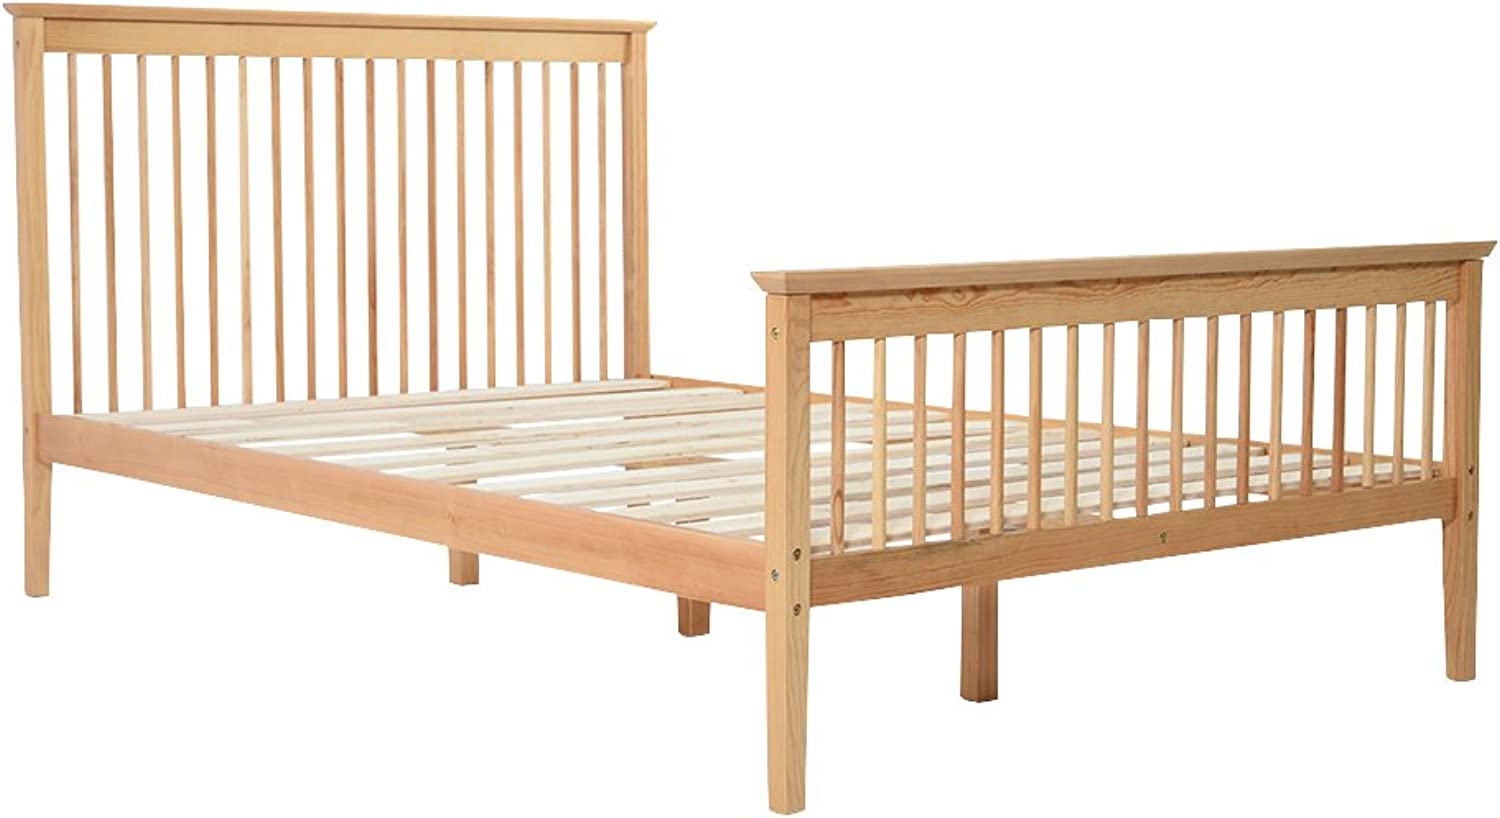 Britoniture 4FT Double Wooden Bed Frame Solid Pine Bedroom in Natural